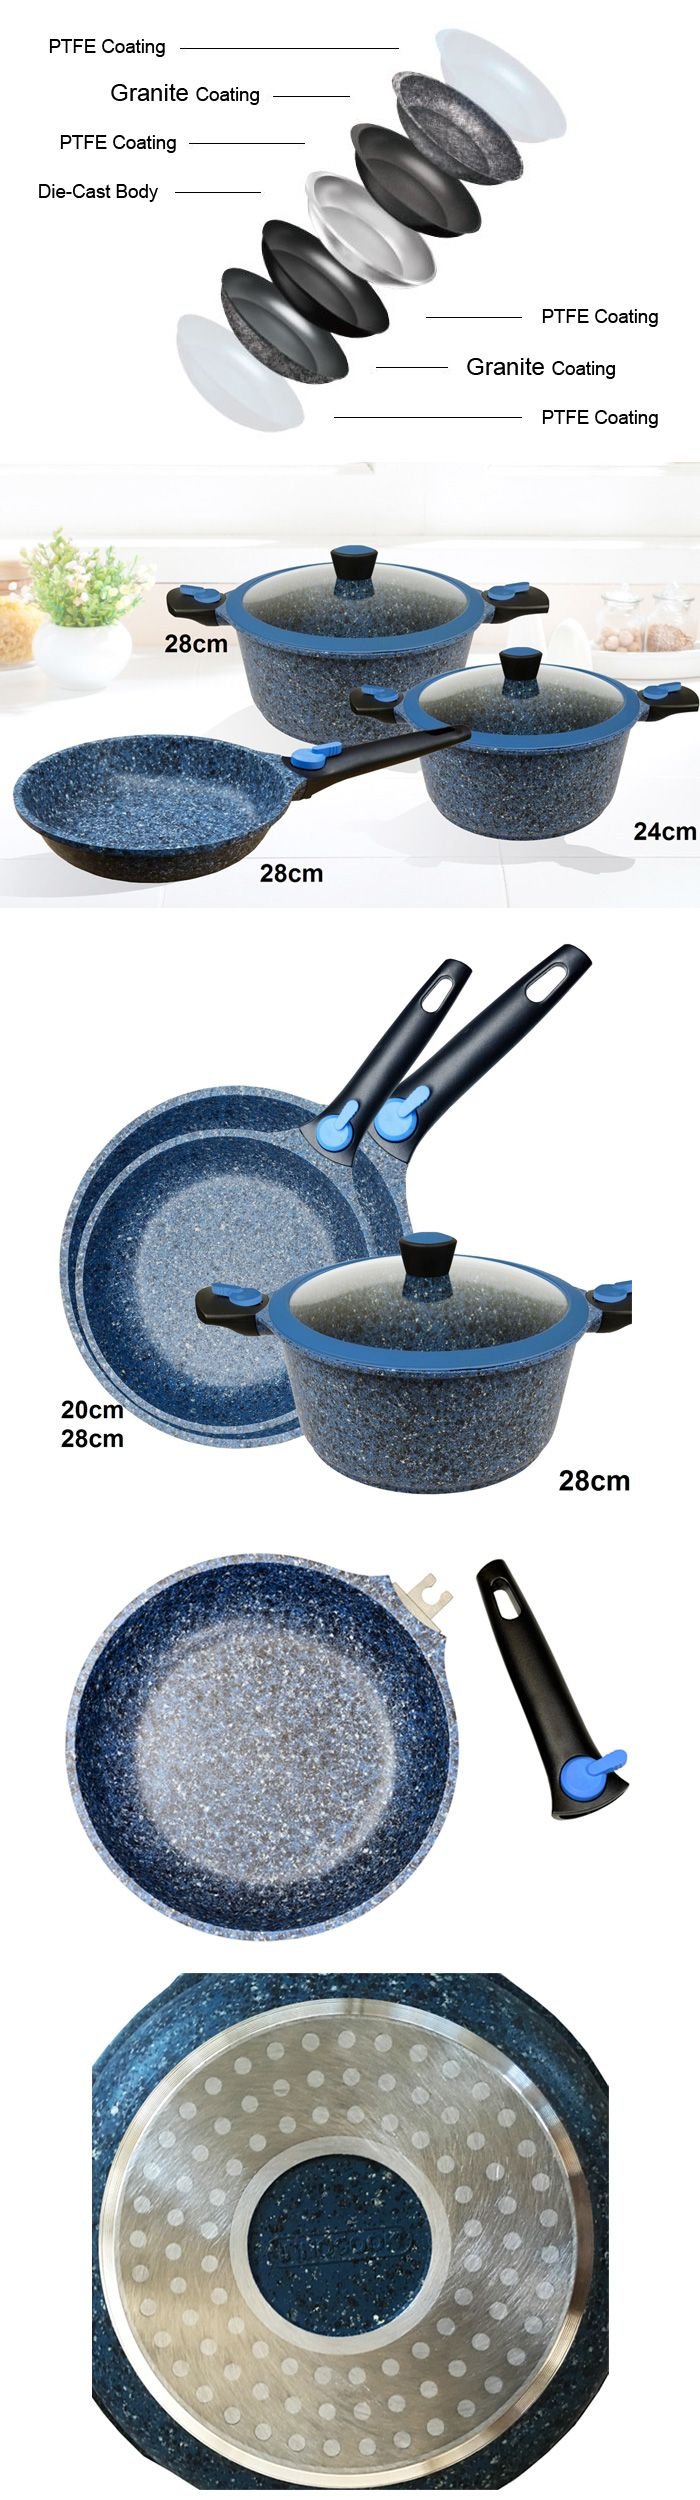 Granite Coating Cookware Combo Set - 3pc, AU$149.00 plus postage from Always Sales (price correct as at 18.09.17)